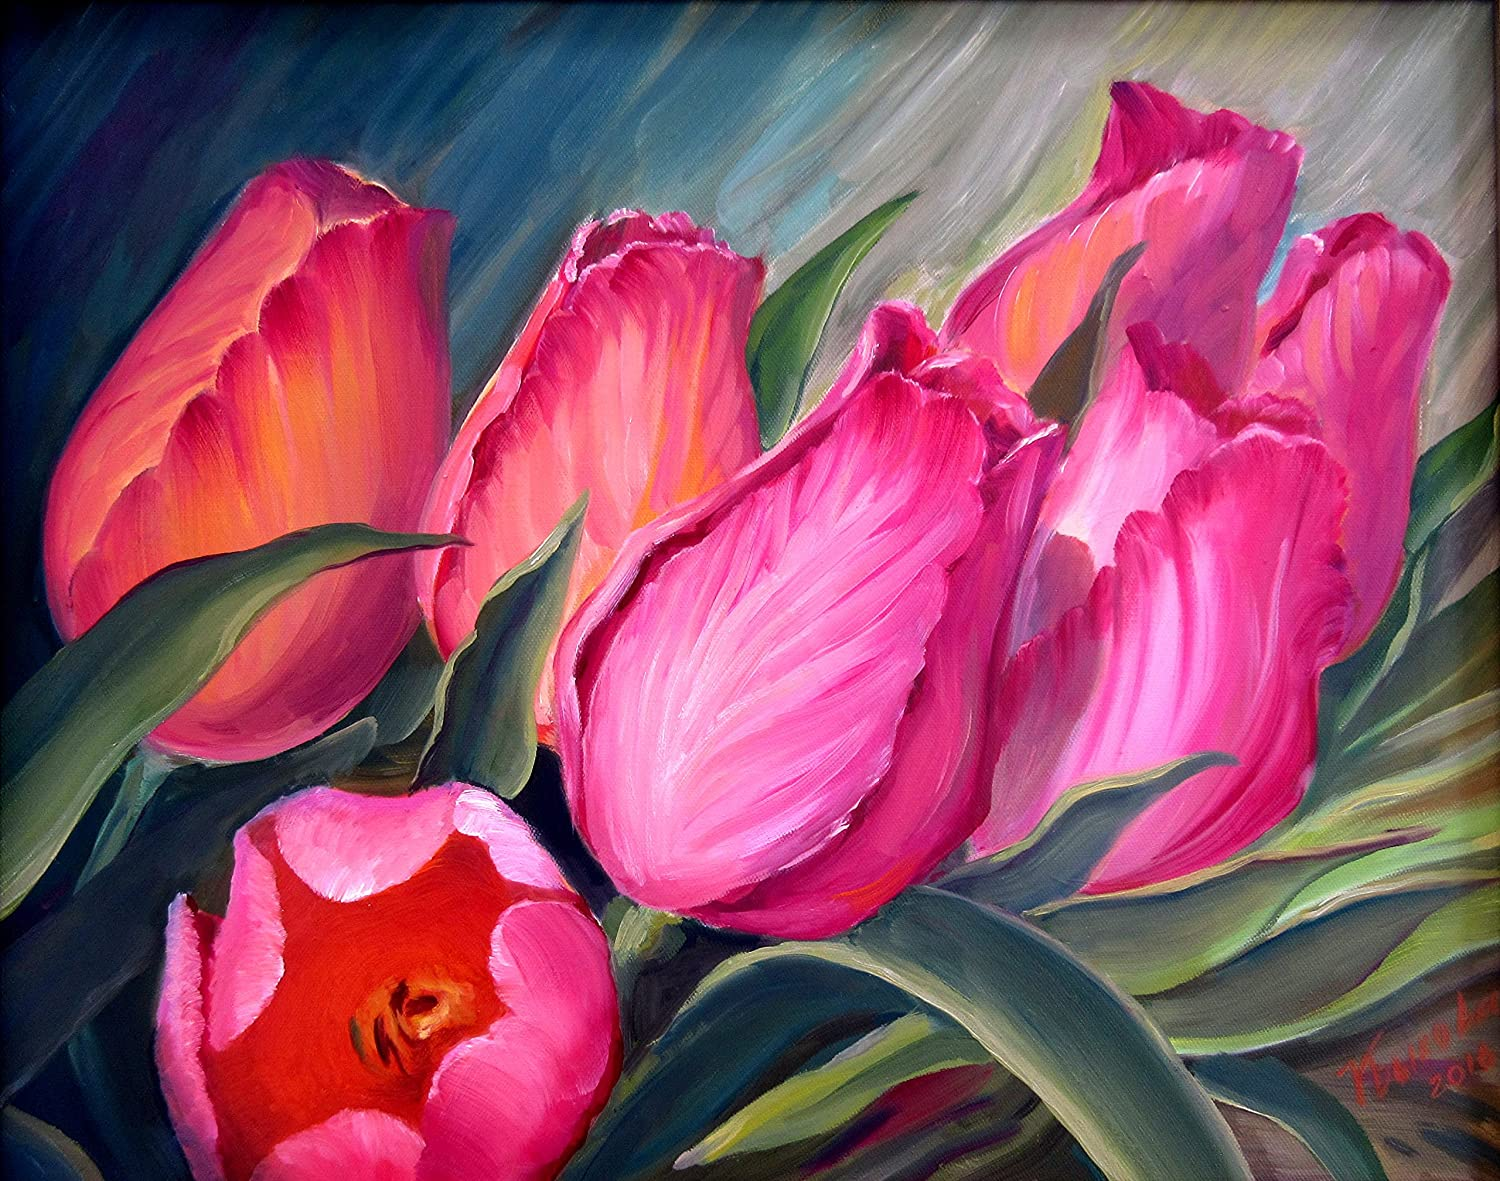 Art Floral Painting Art Home Decor Paintings of Flowers Still life Painting